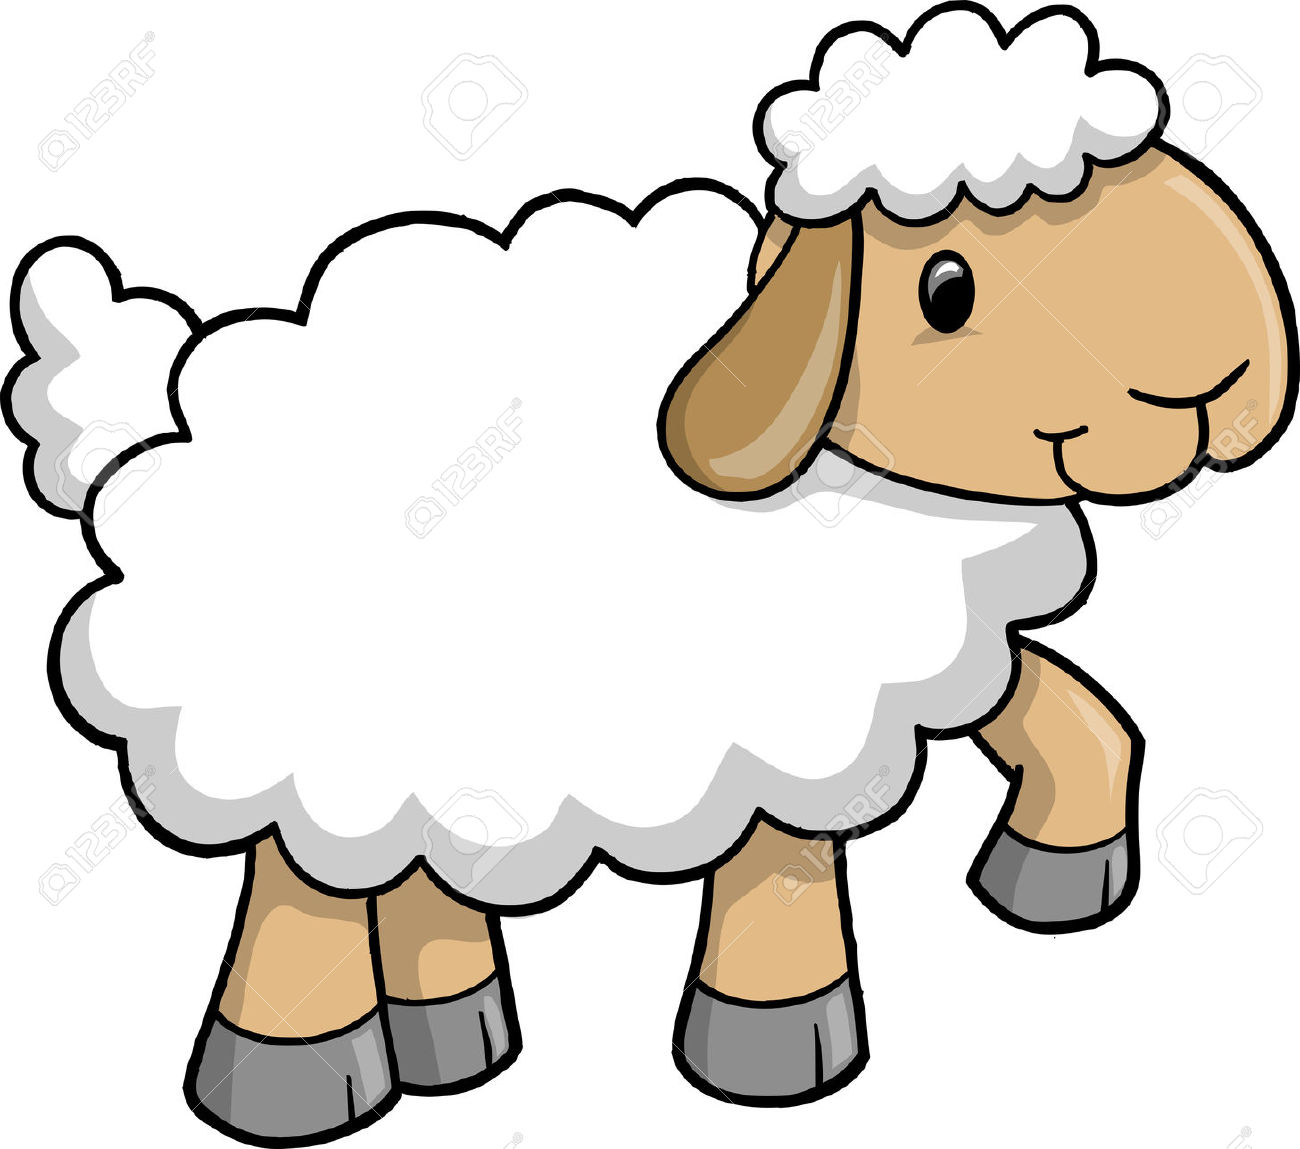 Lambs Clipart.